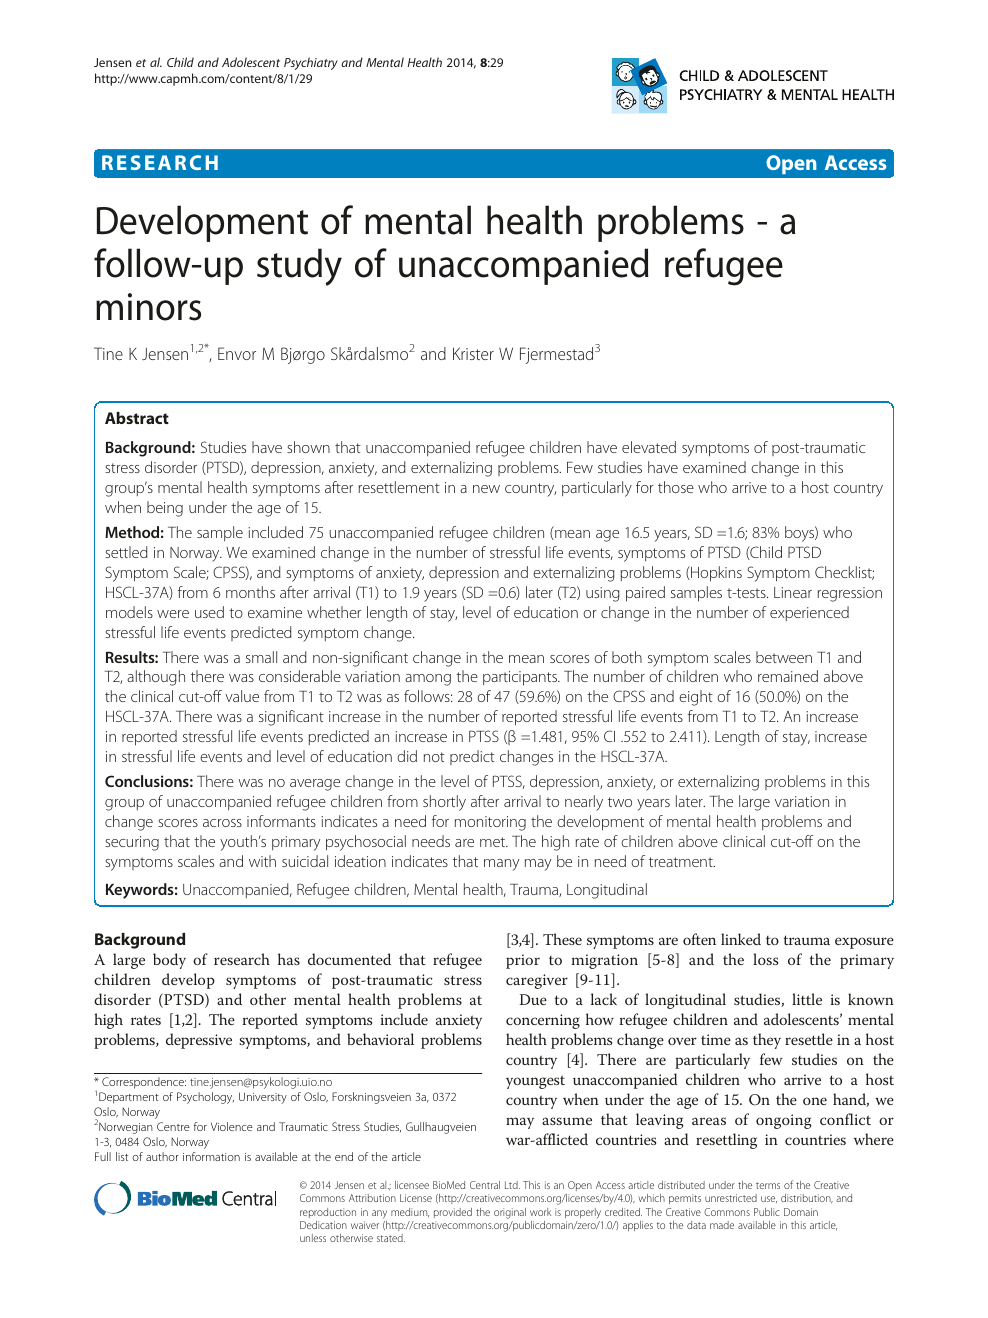 Development of mental health problems - a follow-up study of